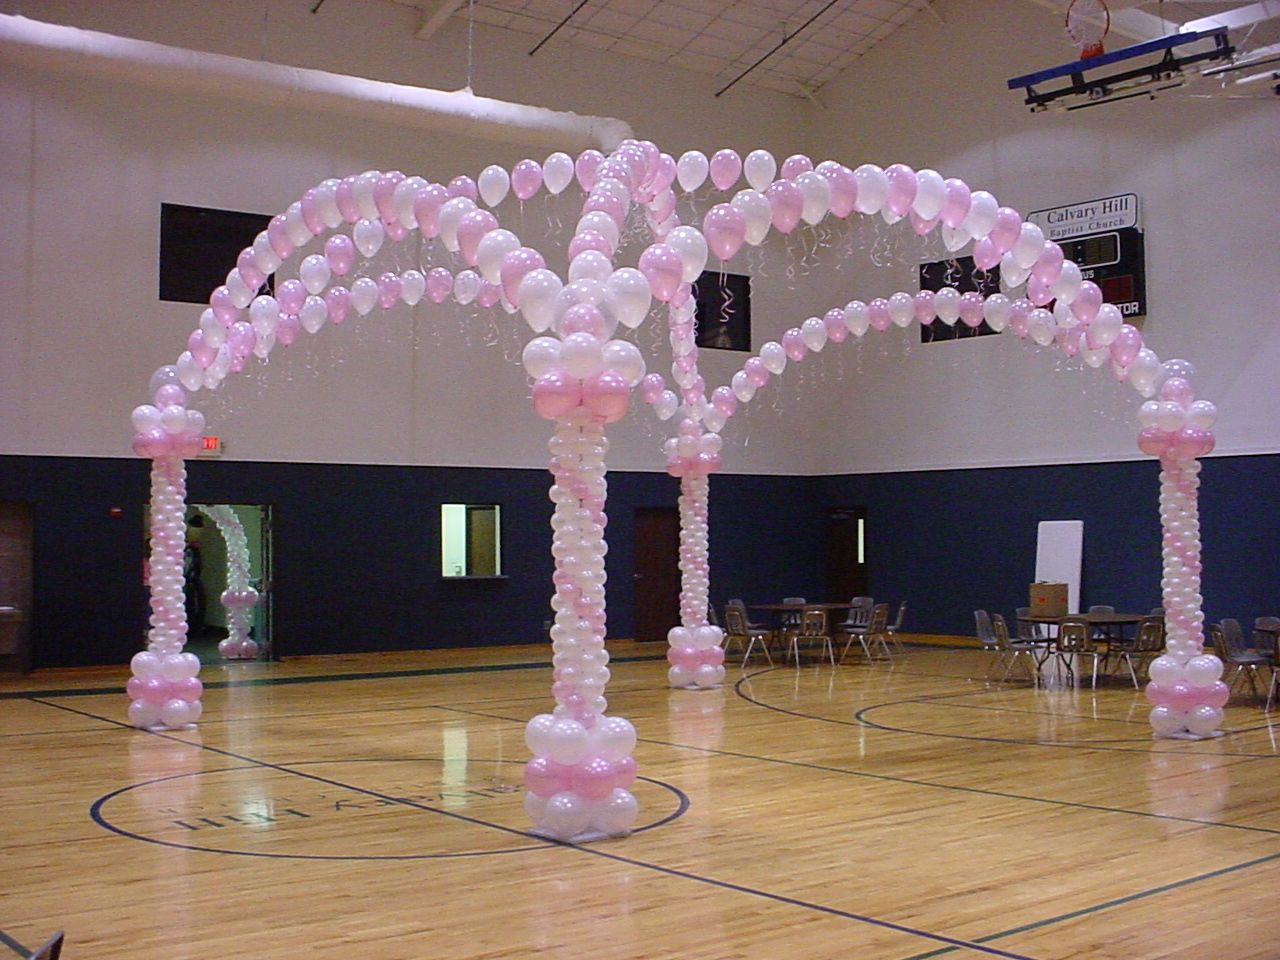 Salones Princesa Dance Floor Balloon Decor Balloon Balloons Arch